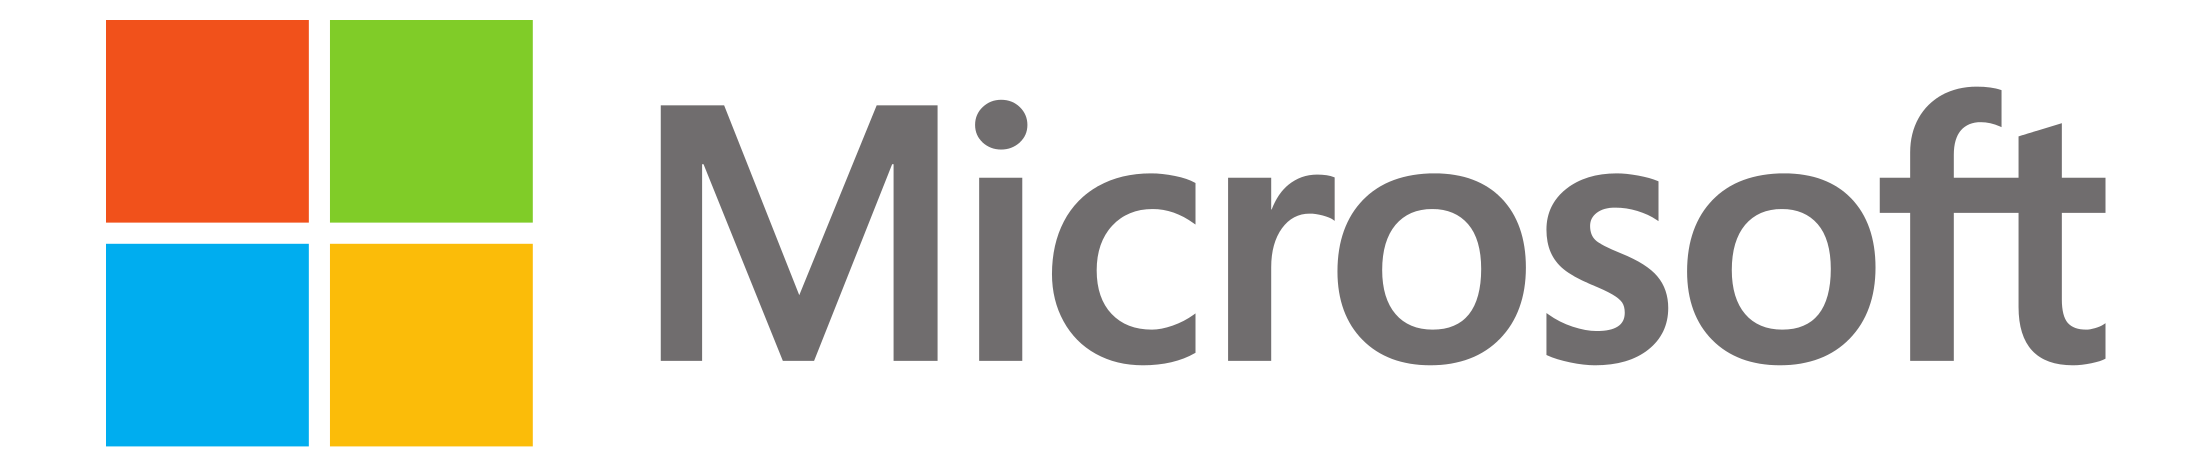 Microsoft_Logo_from website - Copy